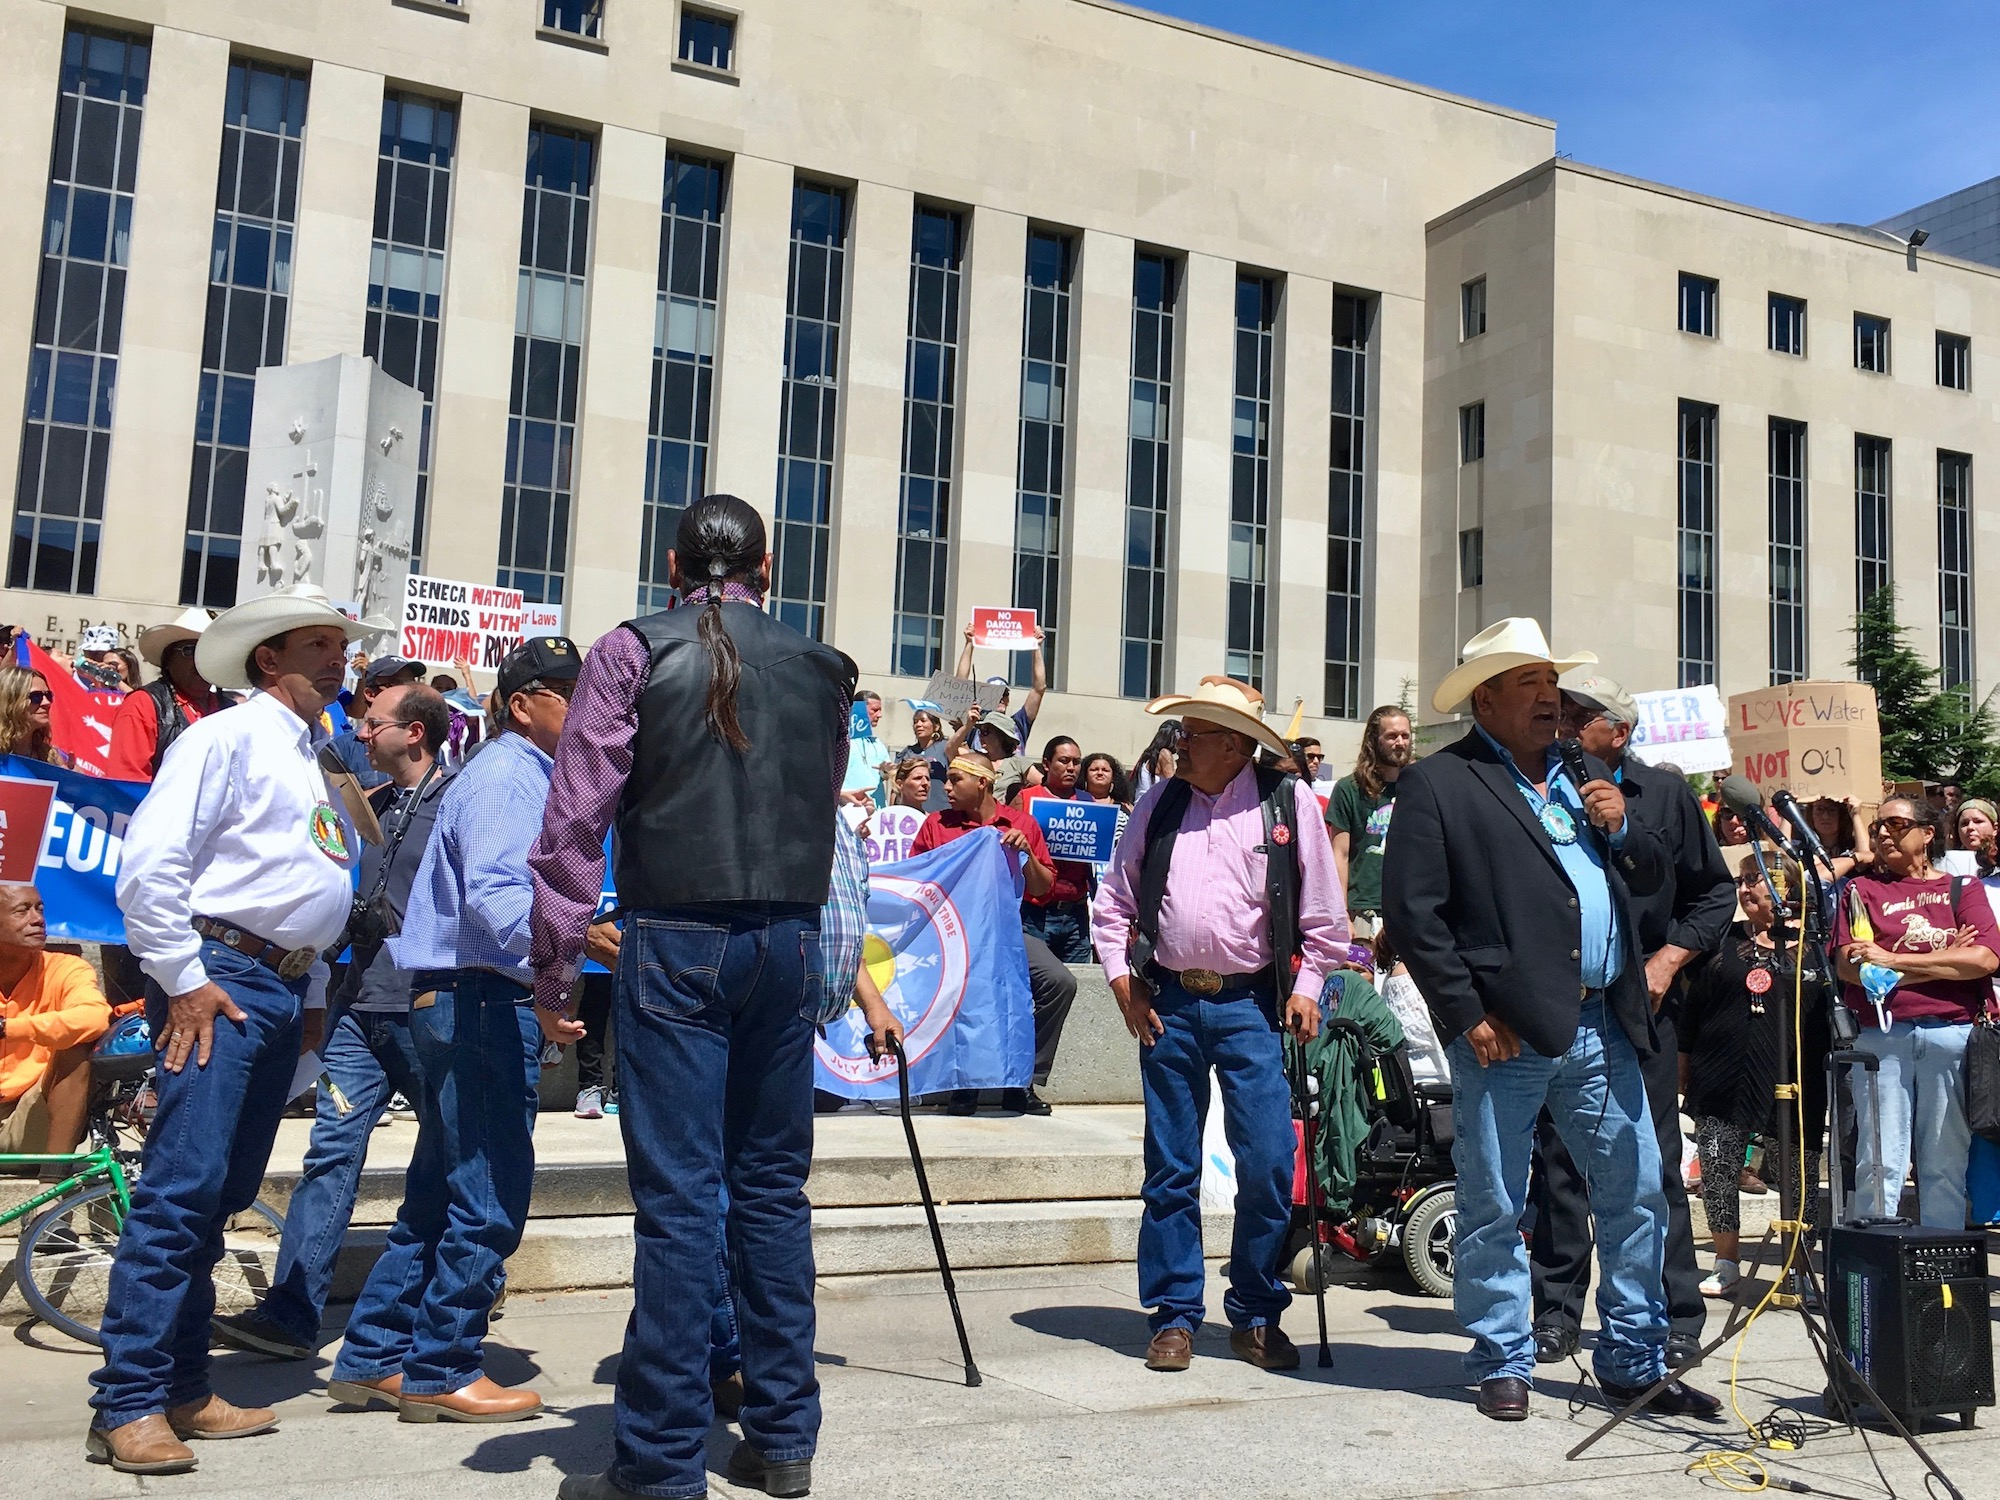 Cheyenne River Sioux Tribe slams Trump for lack of consultation on Dakota Access